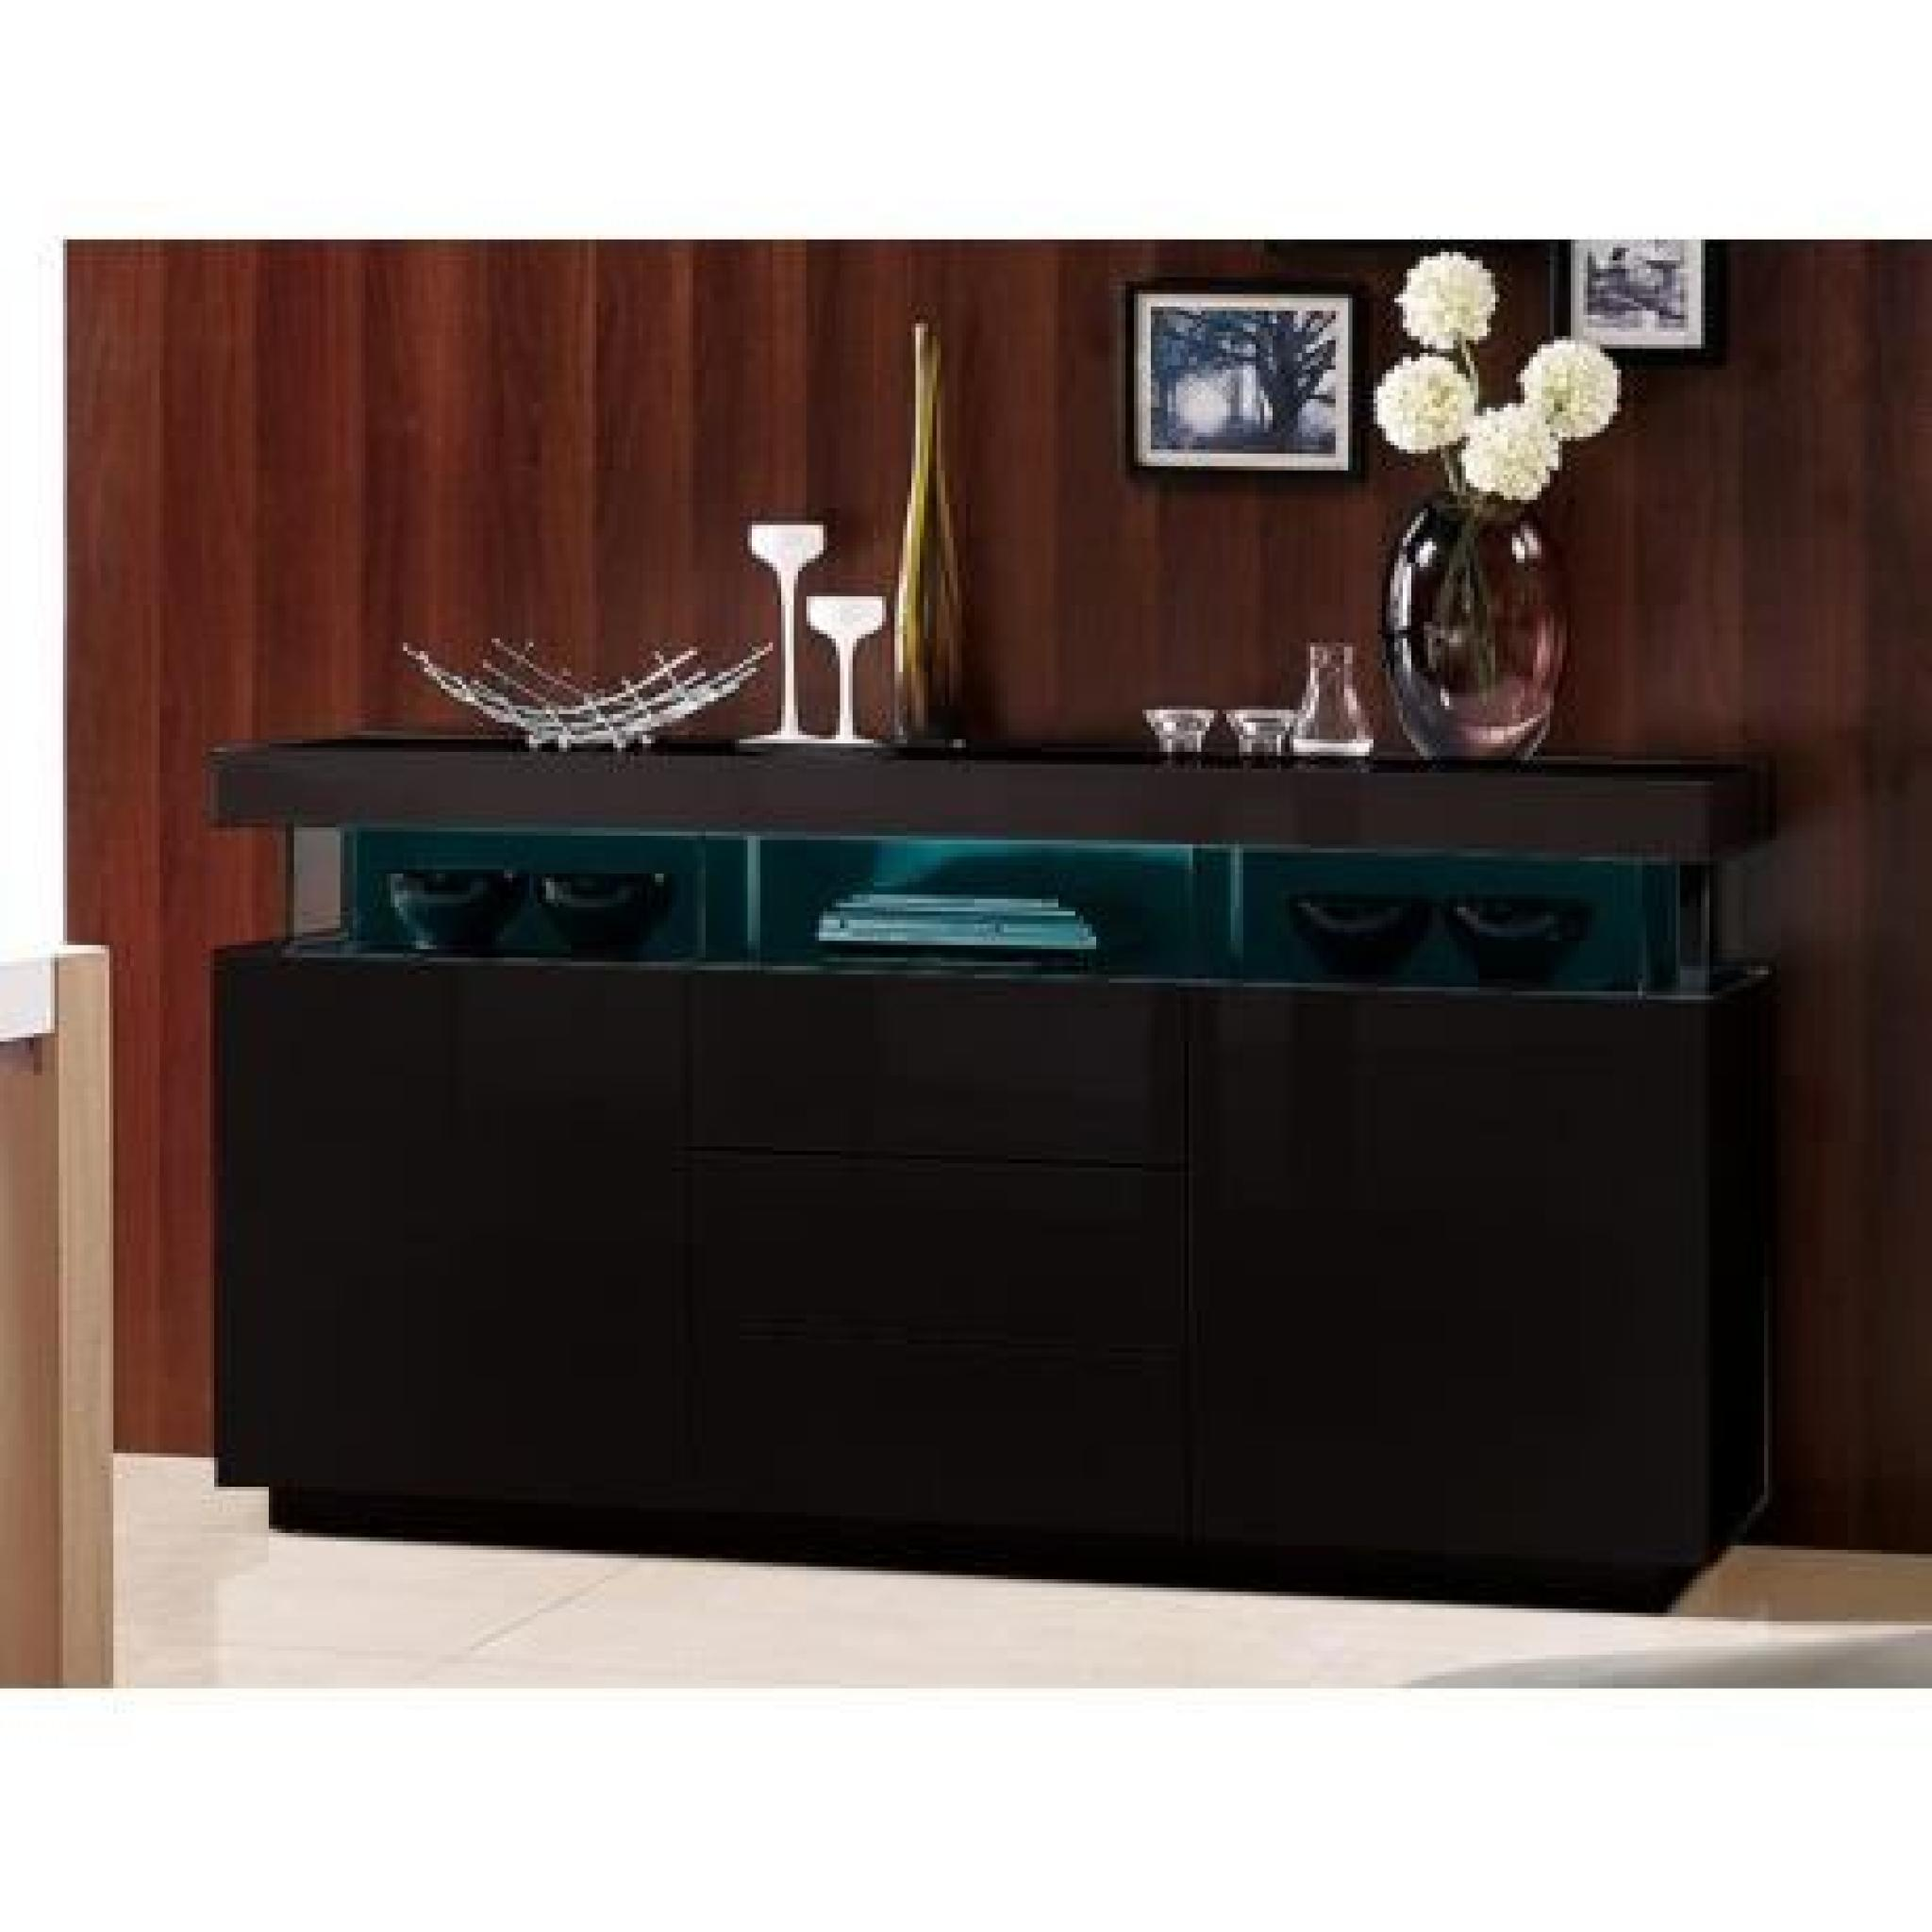 buffet fabio mdf laqu noir leds 3 tiroirs 2 portes achat vente buffet pas cher. Black Bedroom Furniture Sets. Home Design Ideas